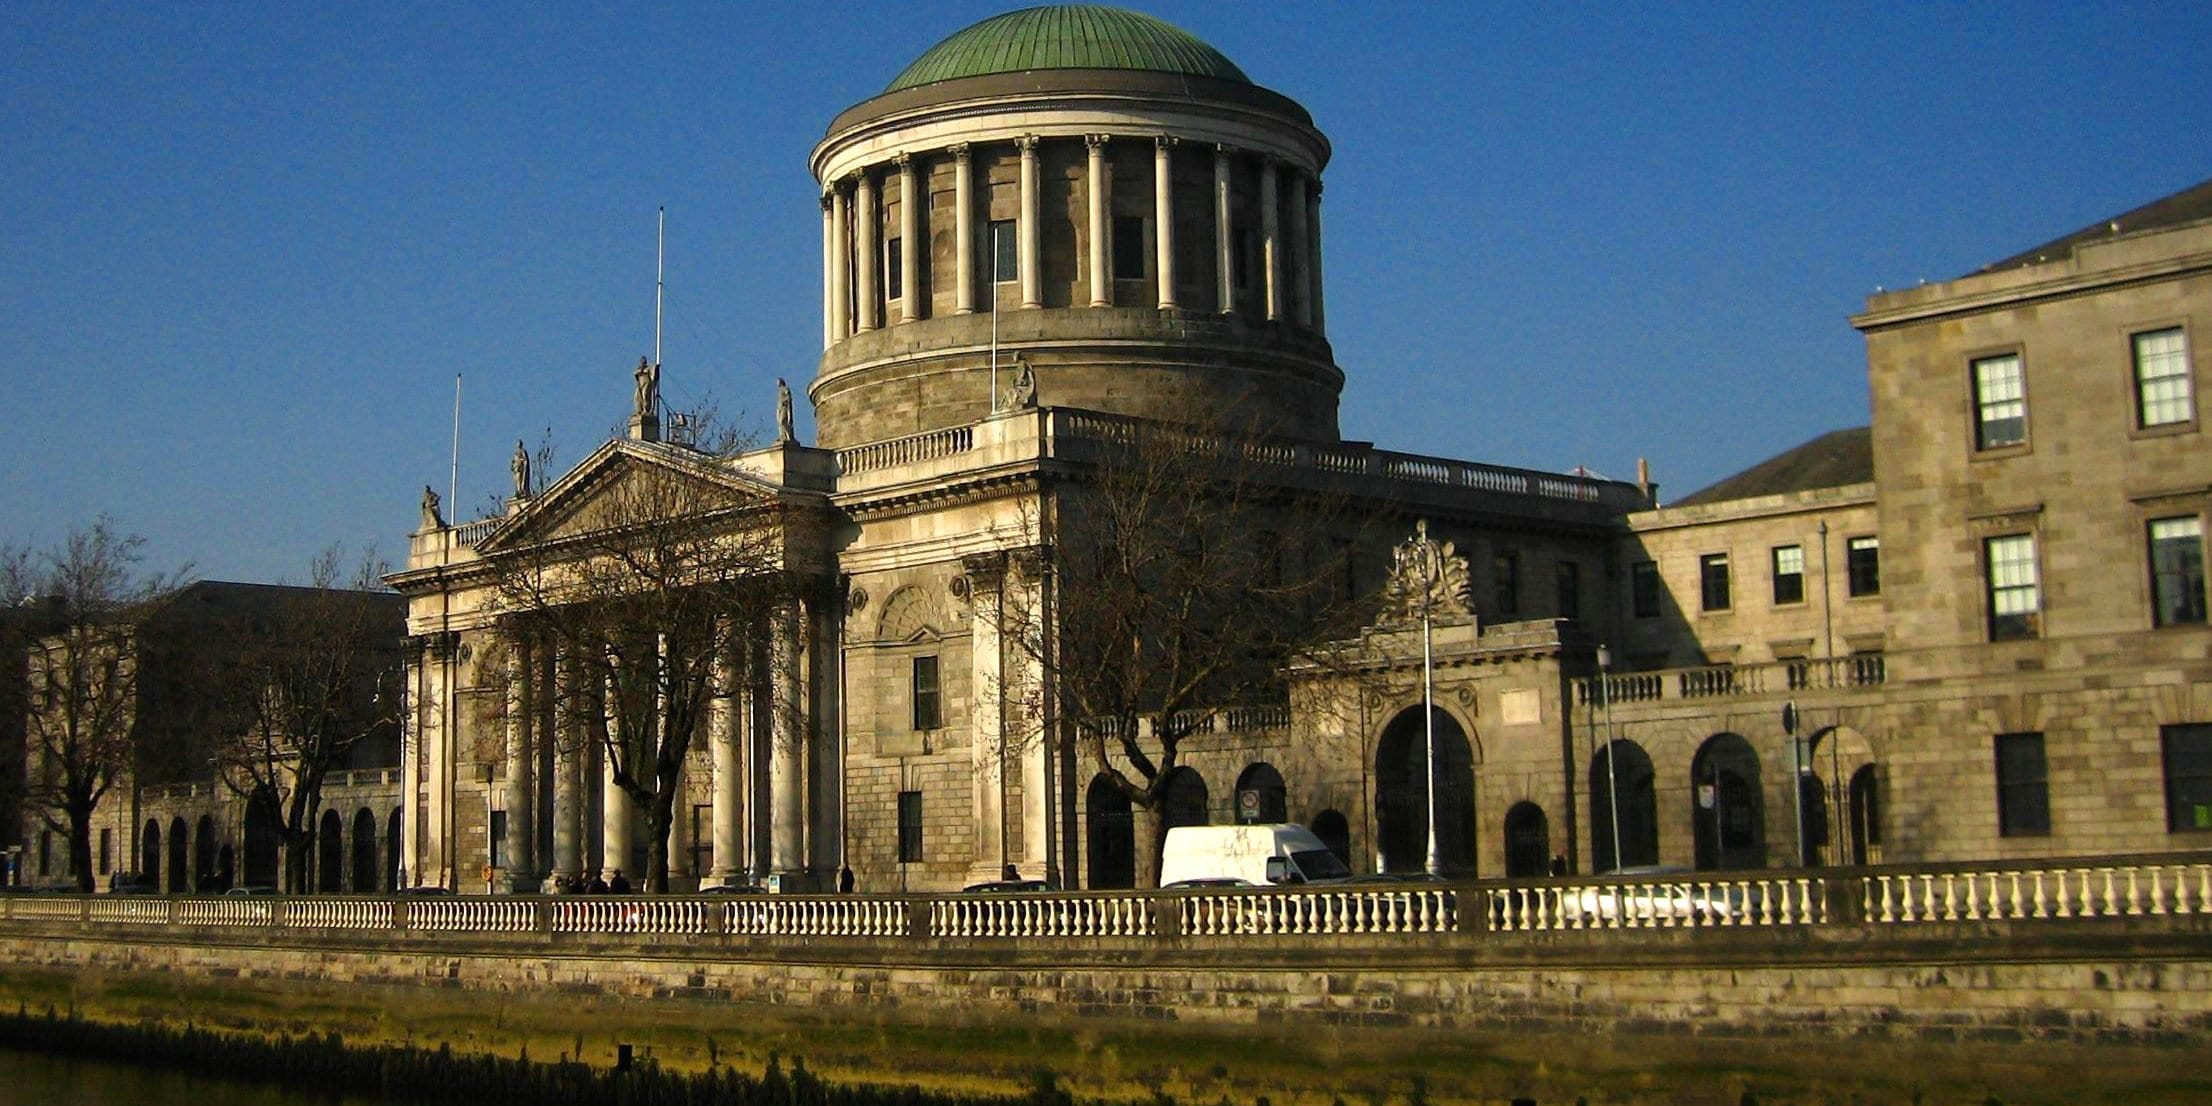 Galway construction company Glenman faces High Court action over alleged debt